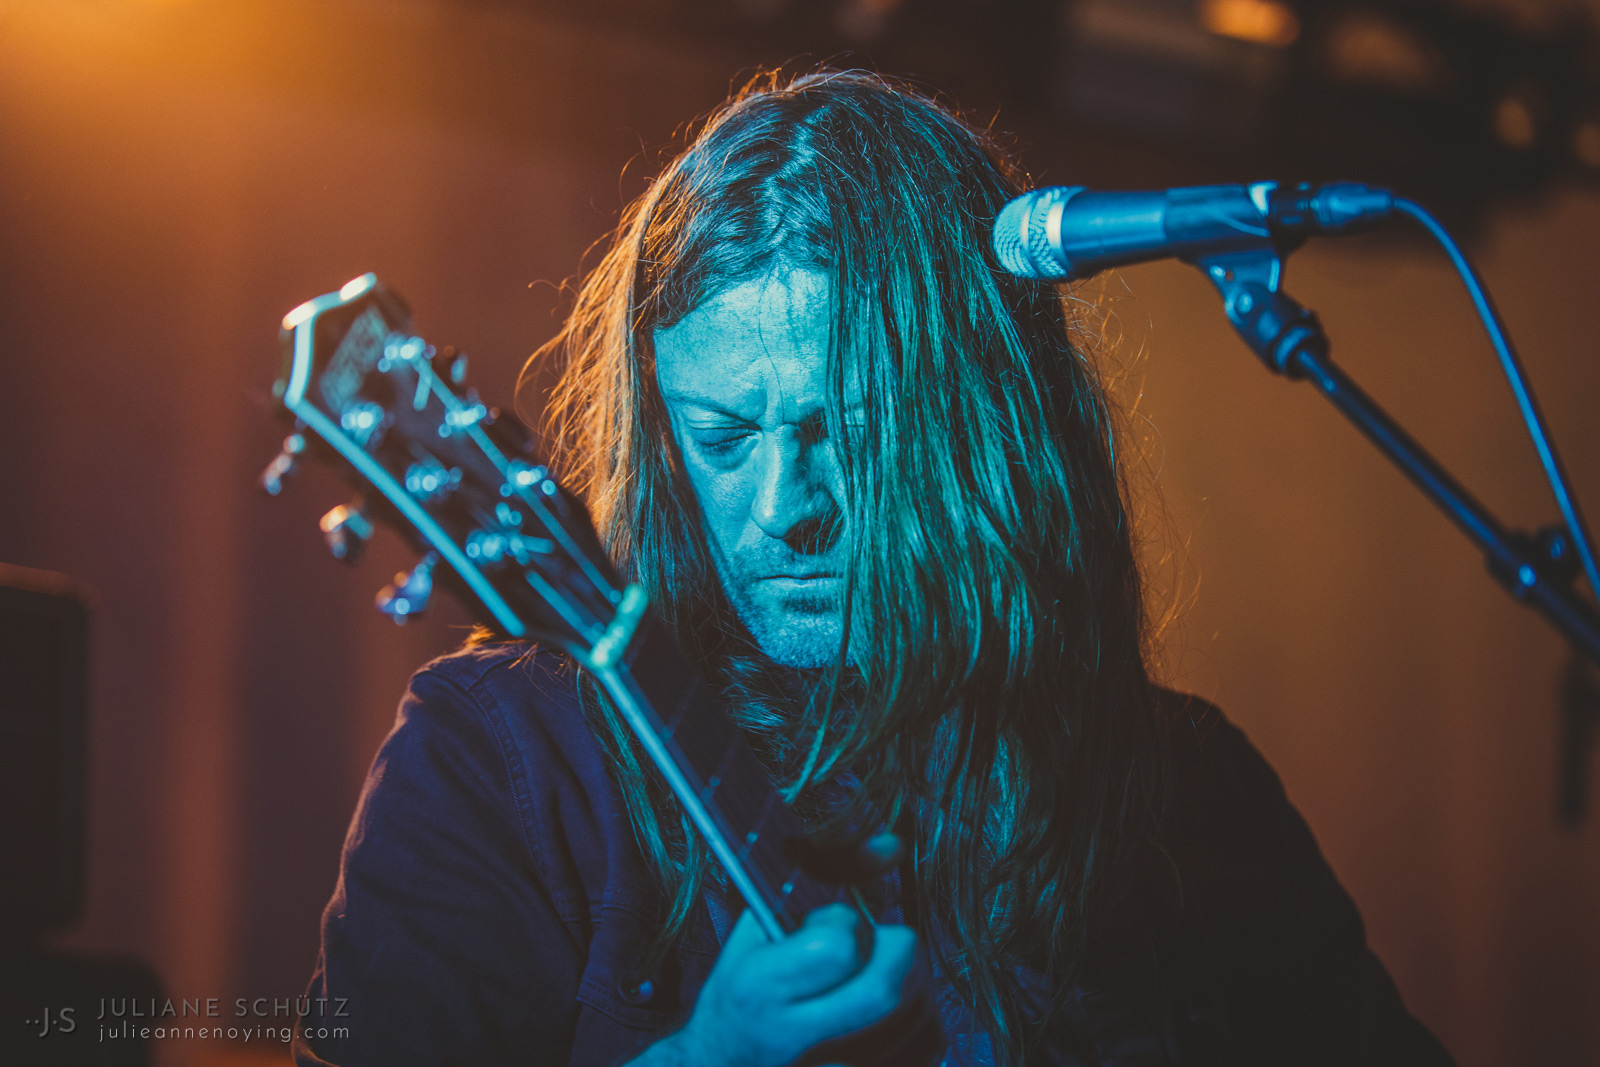 Motorpsycho / Bent Sæther | © Juliane Schütz